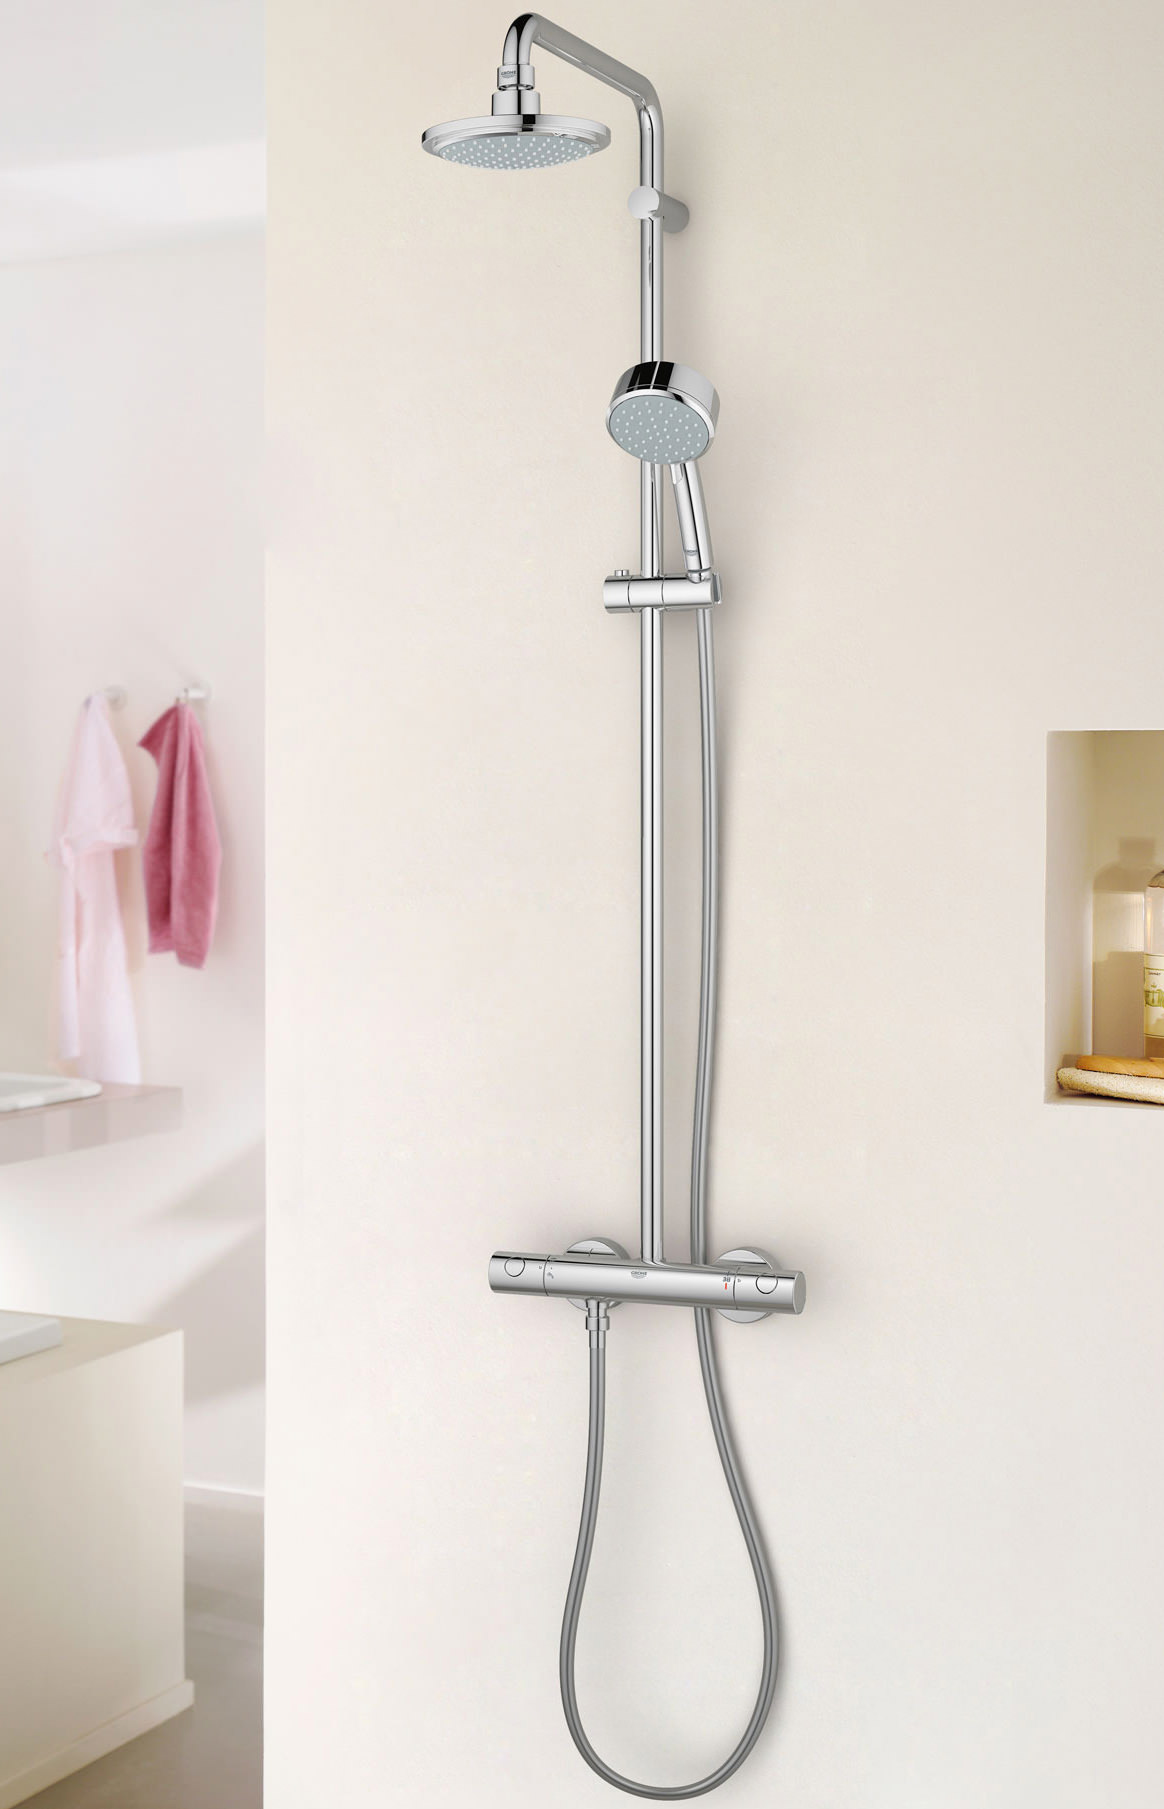 grohe new tempesta cosmopolitan shower system with thermostat. Black Bedroom Furniture Sets. Home Design Ideas